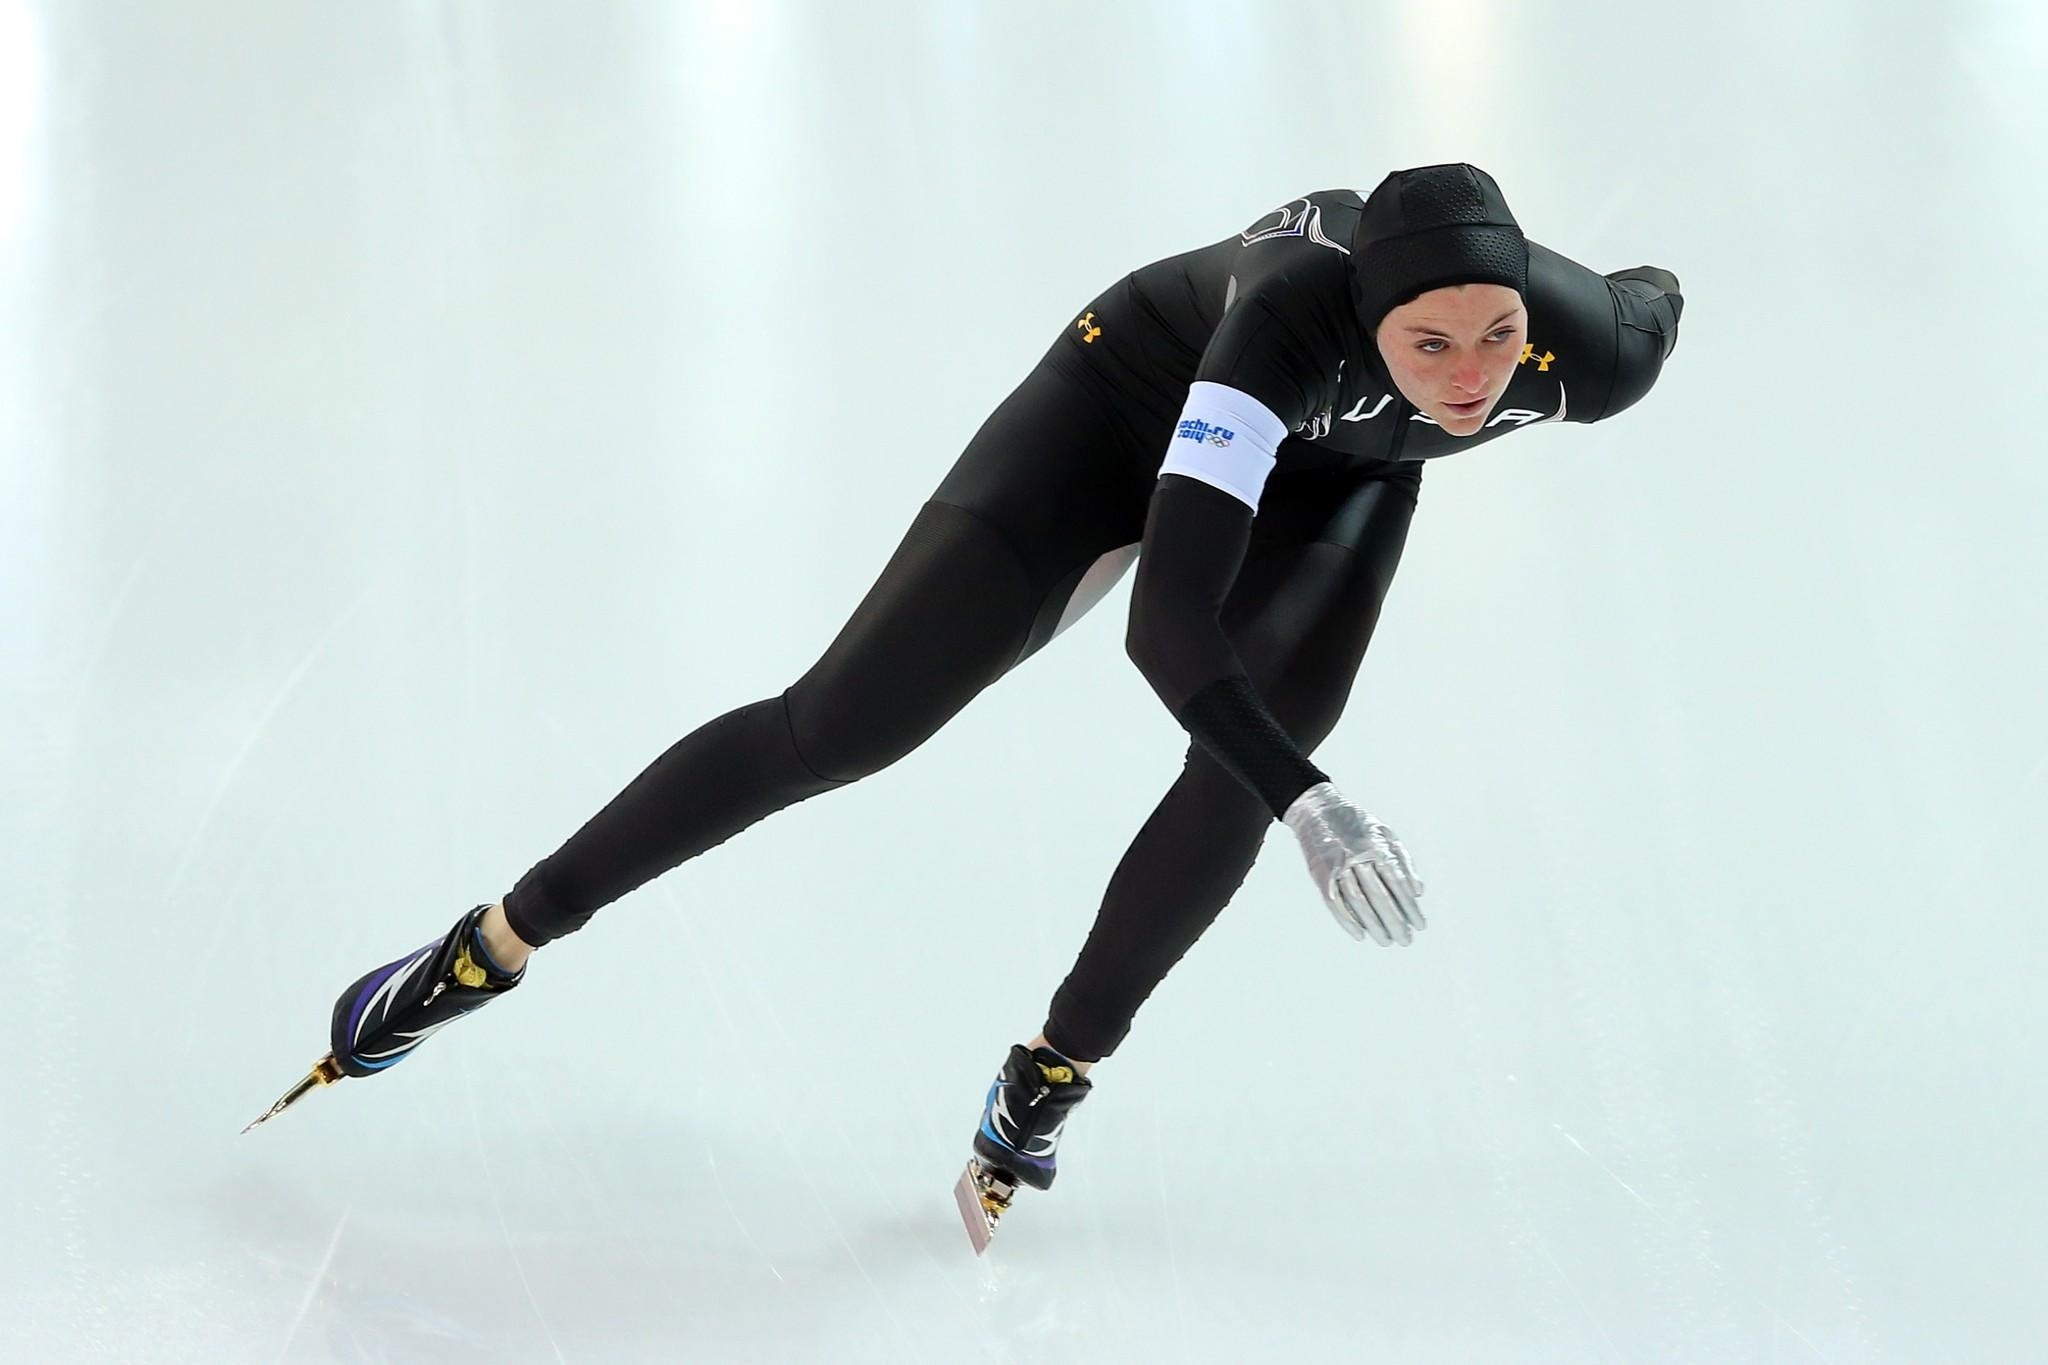 Heather Richardson of the United States competes during the Women's 1000m Speed Skating event.